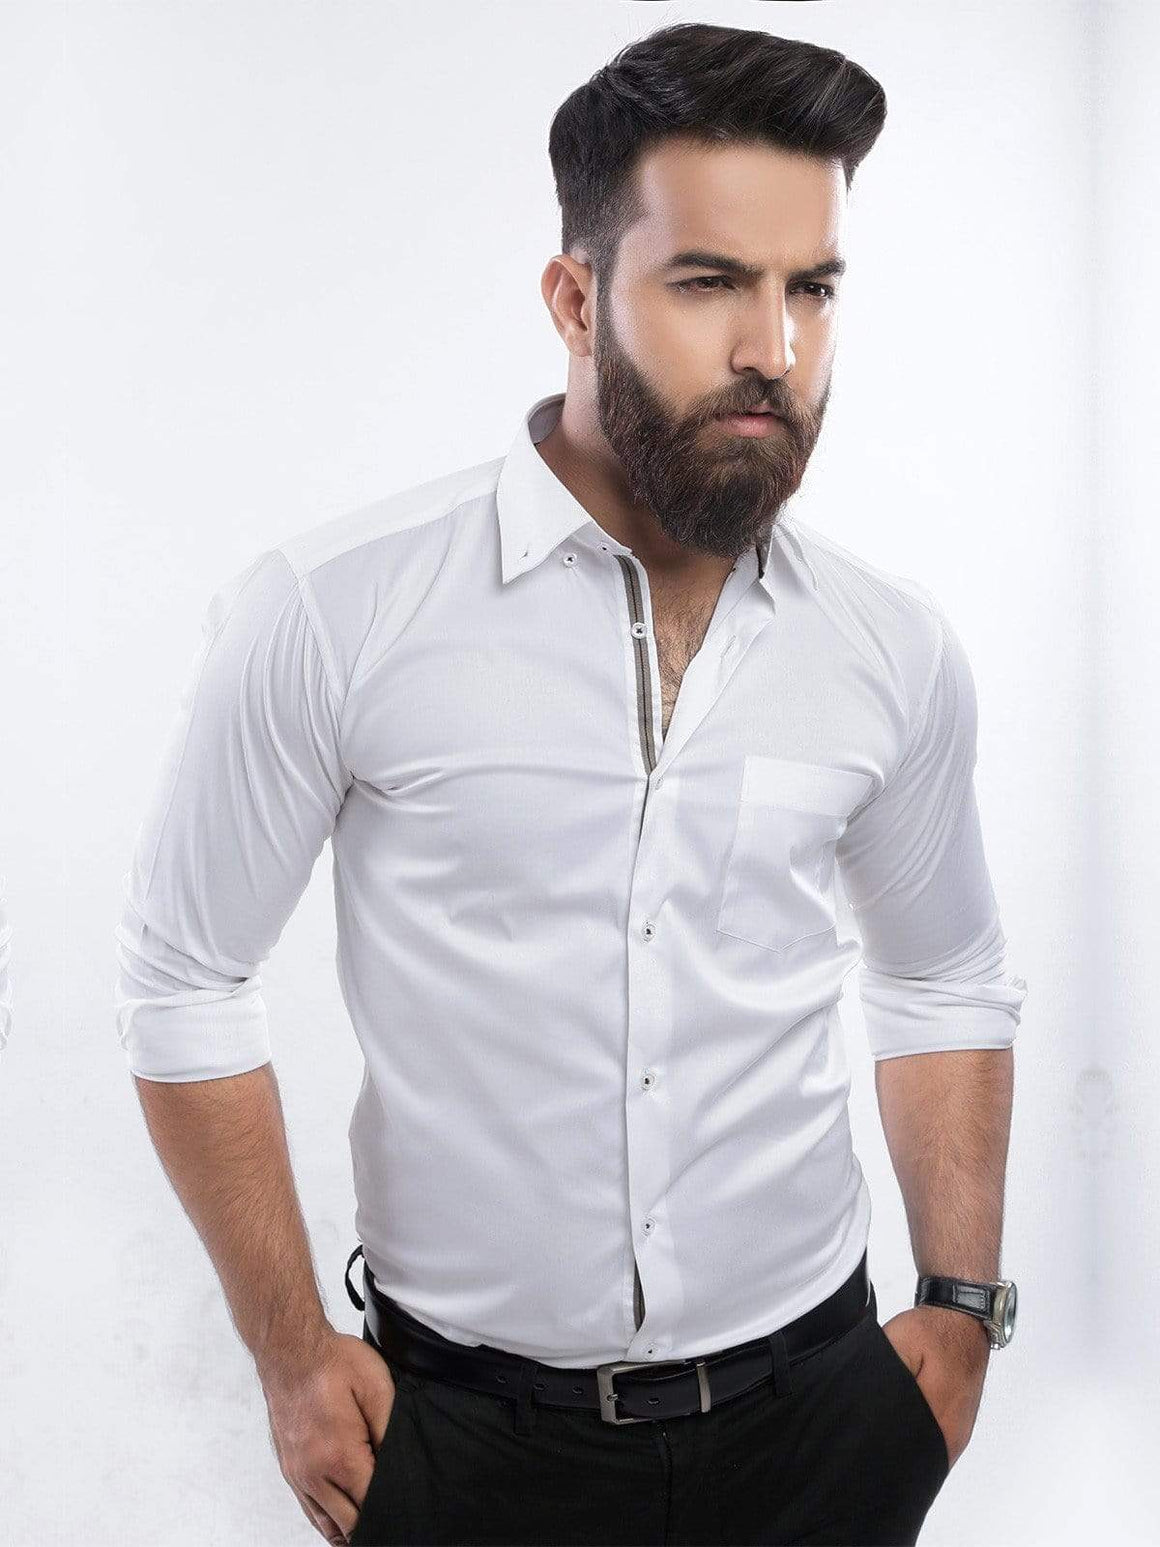 The Cress - White Button Down Collar Premium Shirt